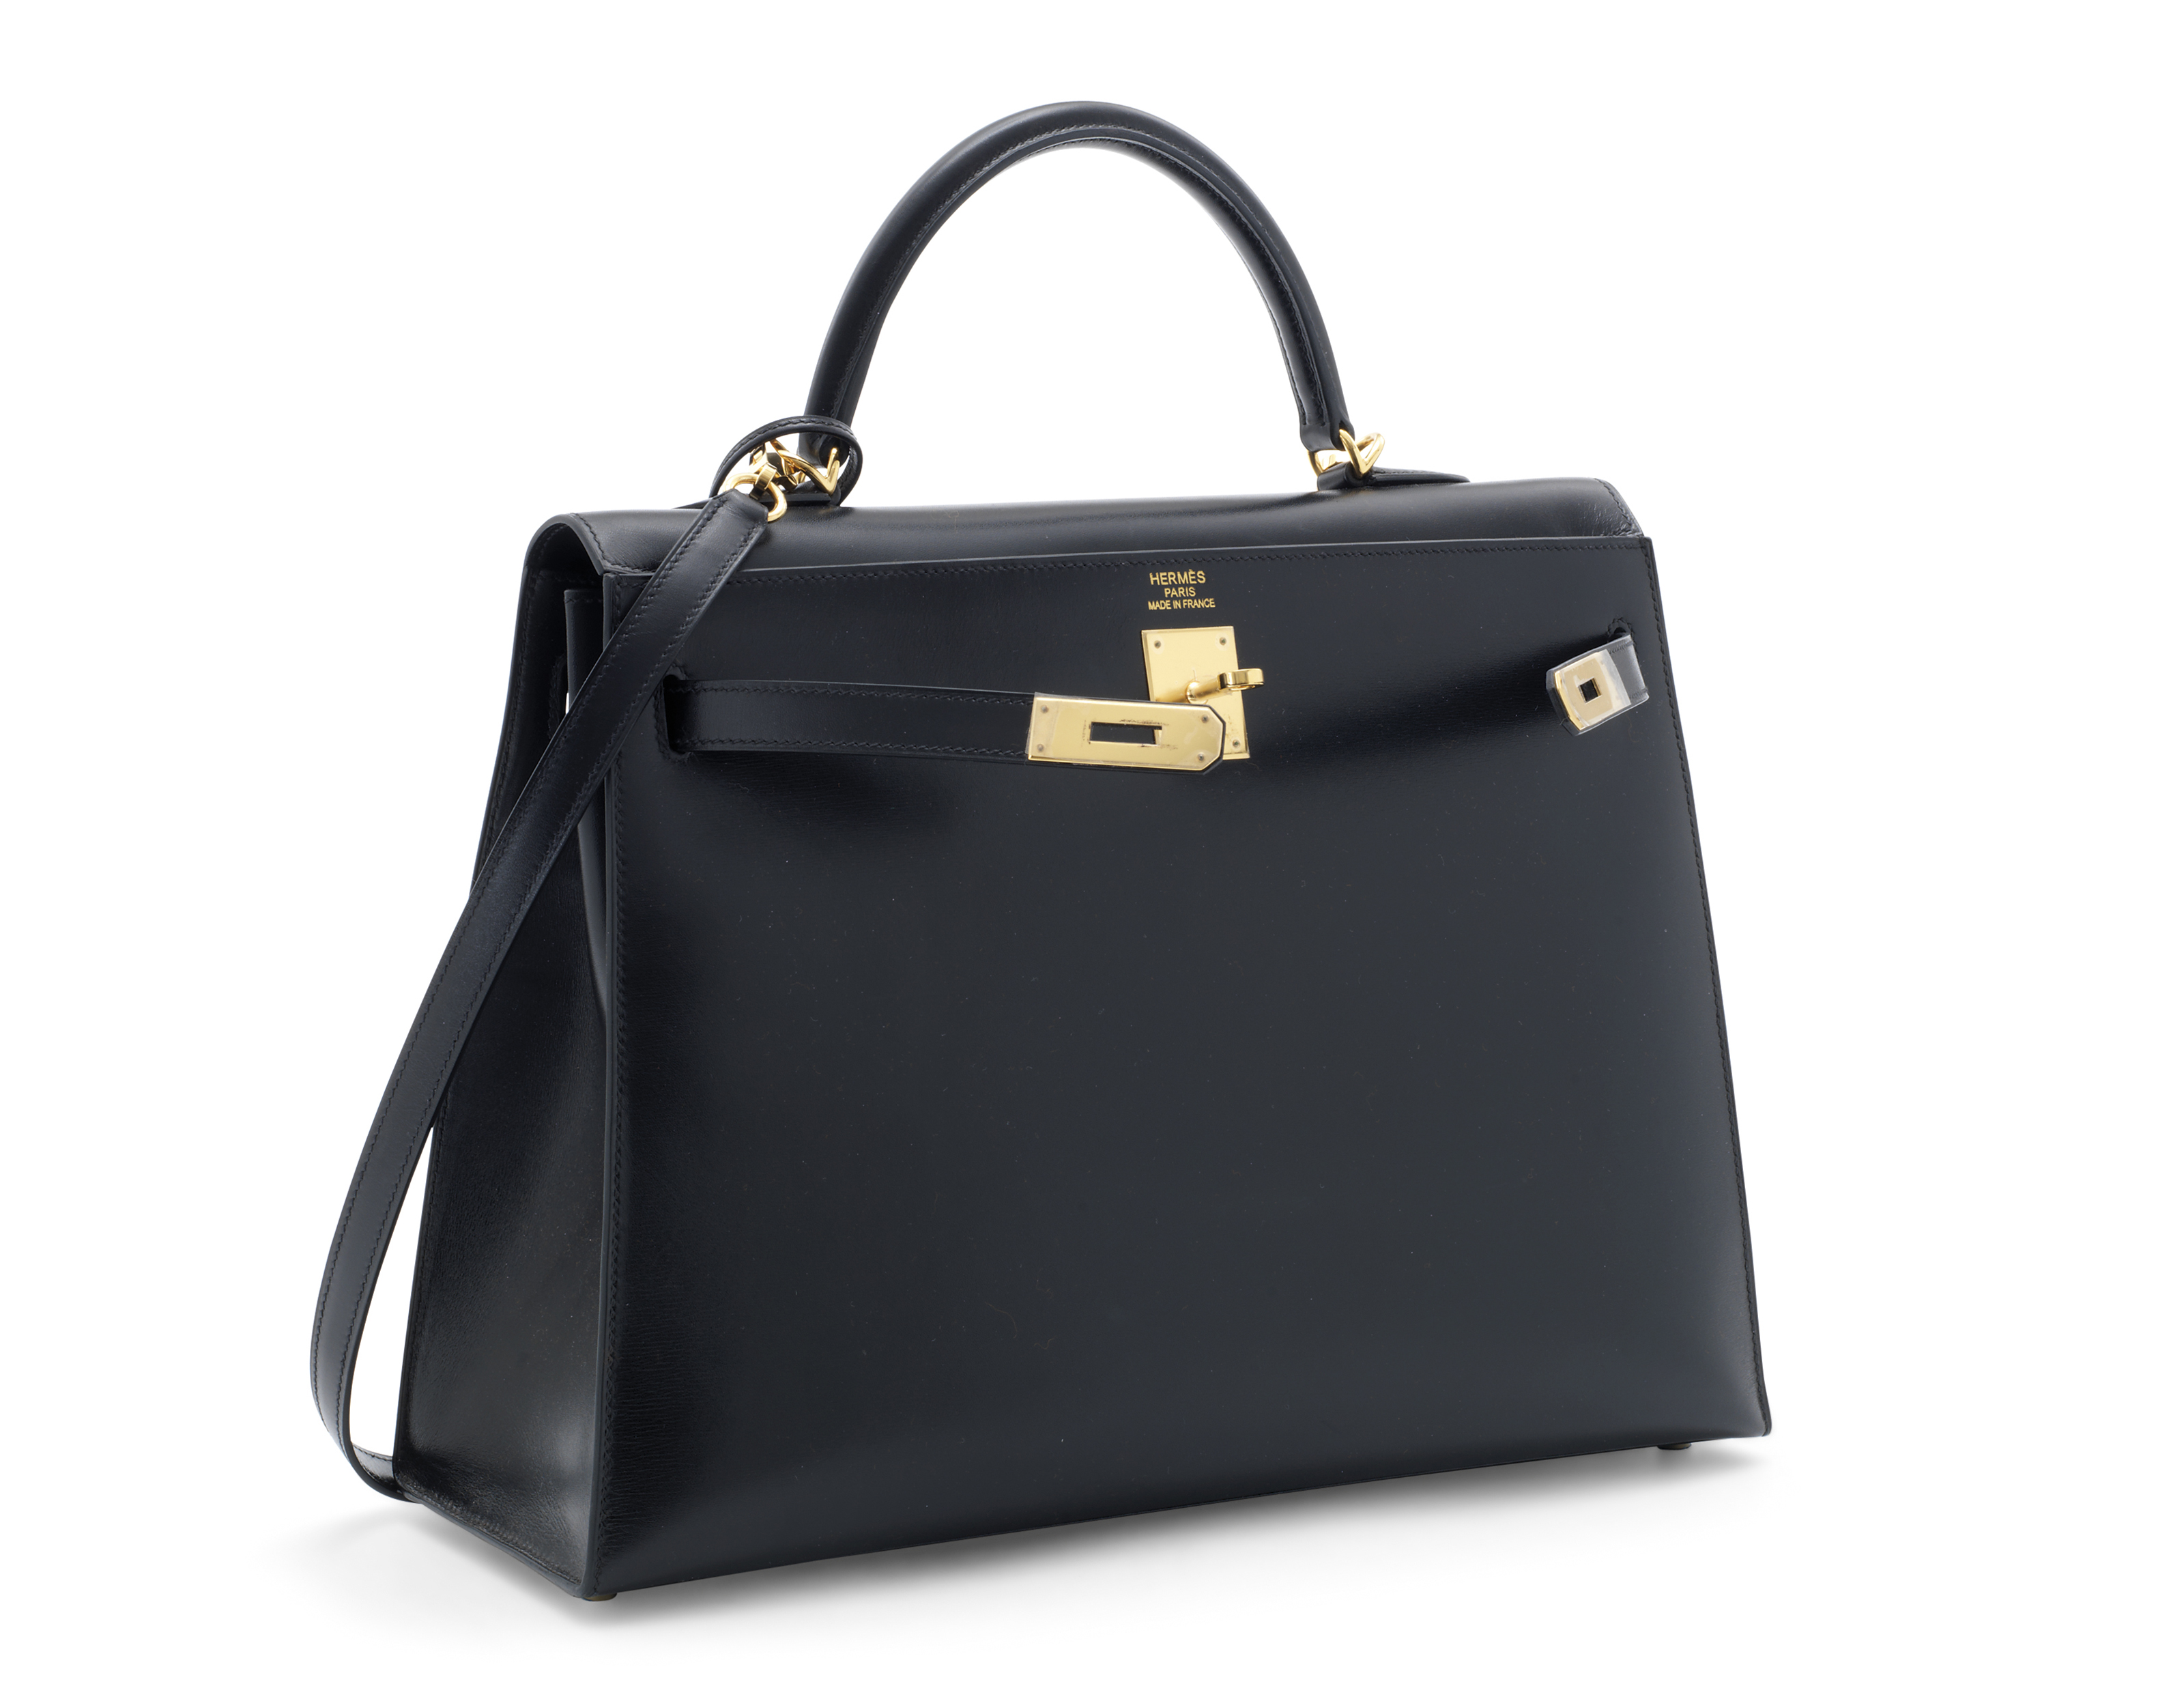 A BLACK CALF BOX LEATHER SELLIER KELLY 35 WITH GOLD HARDWARE